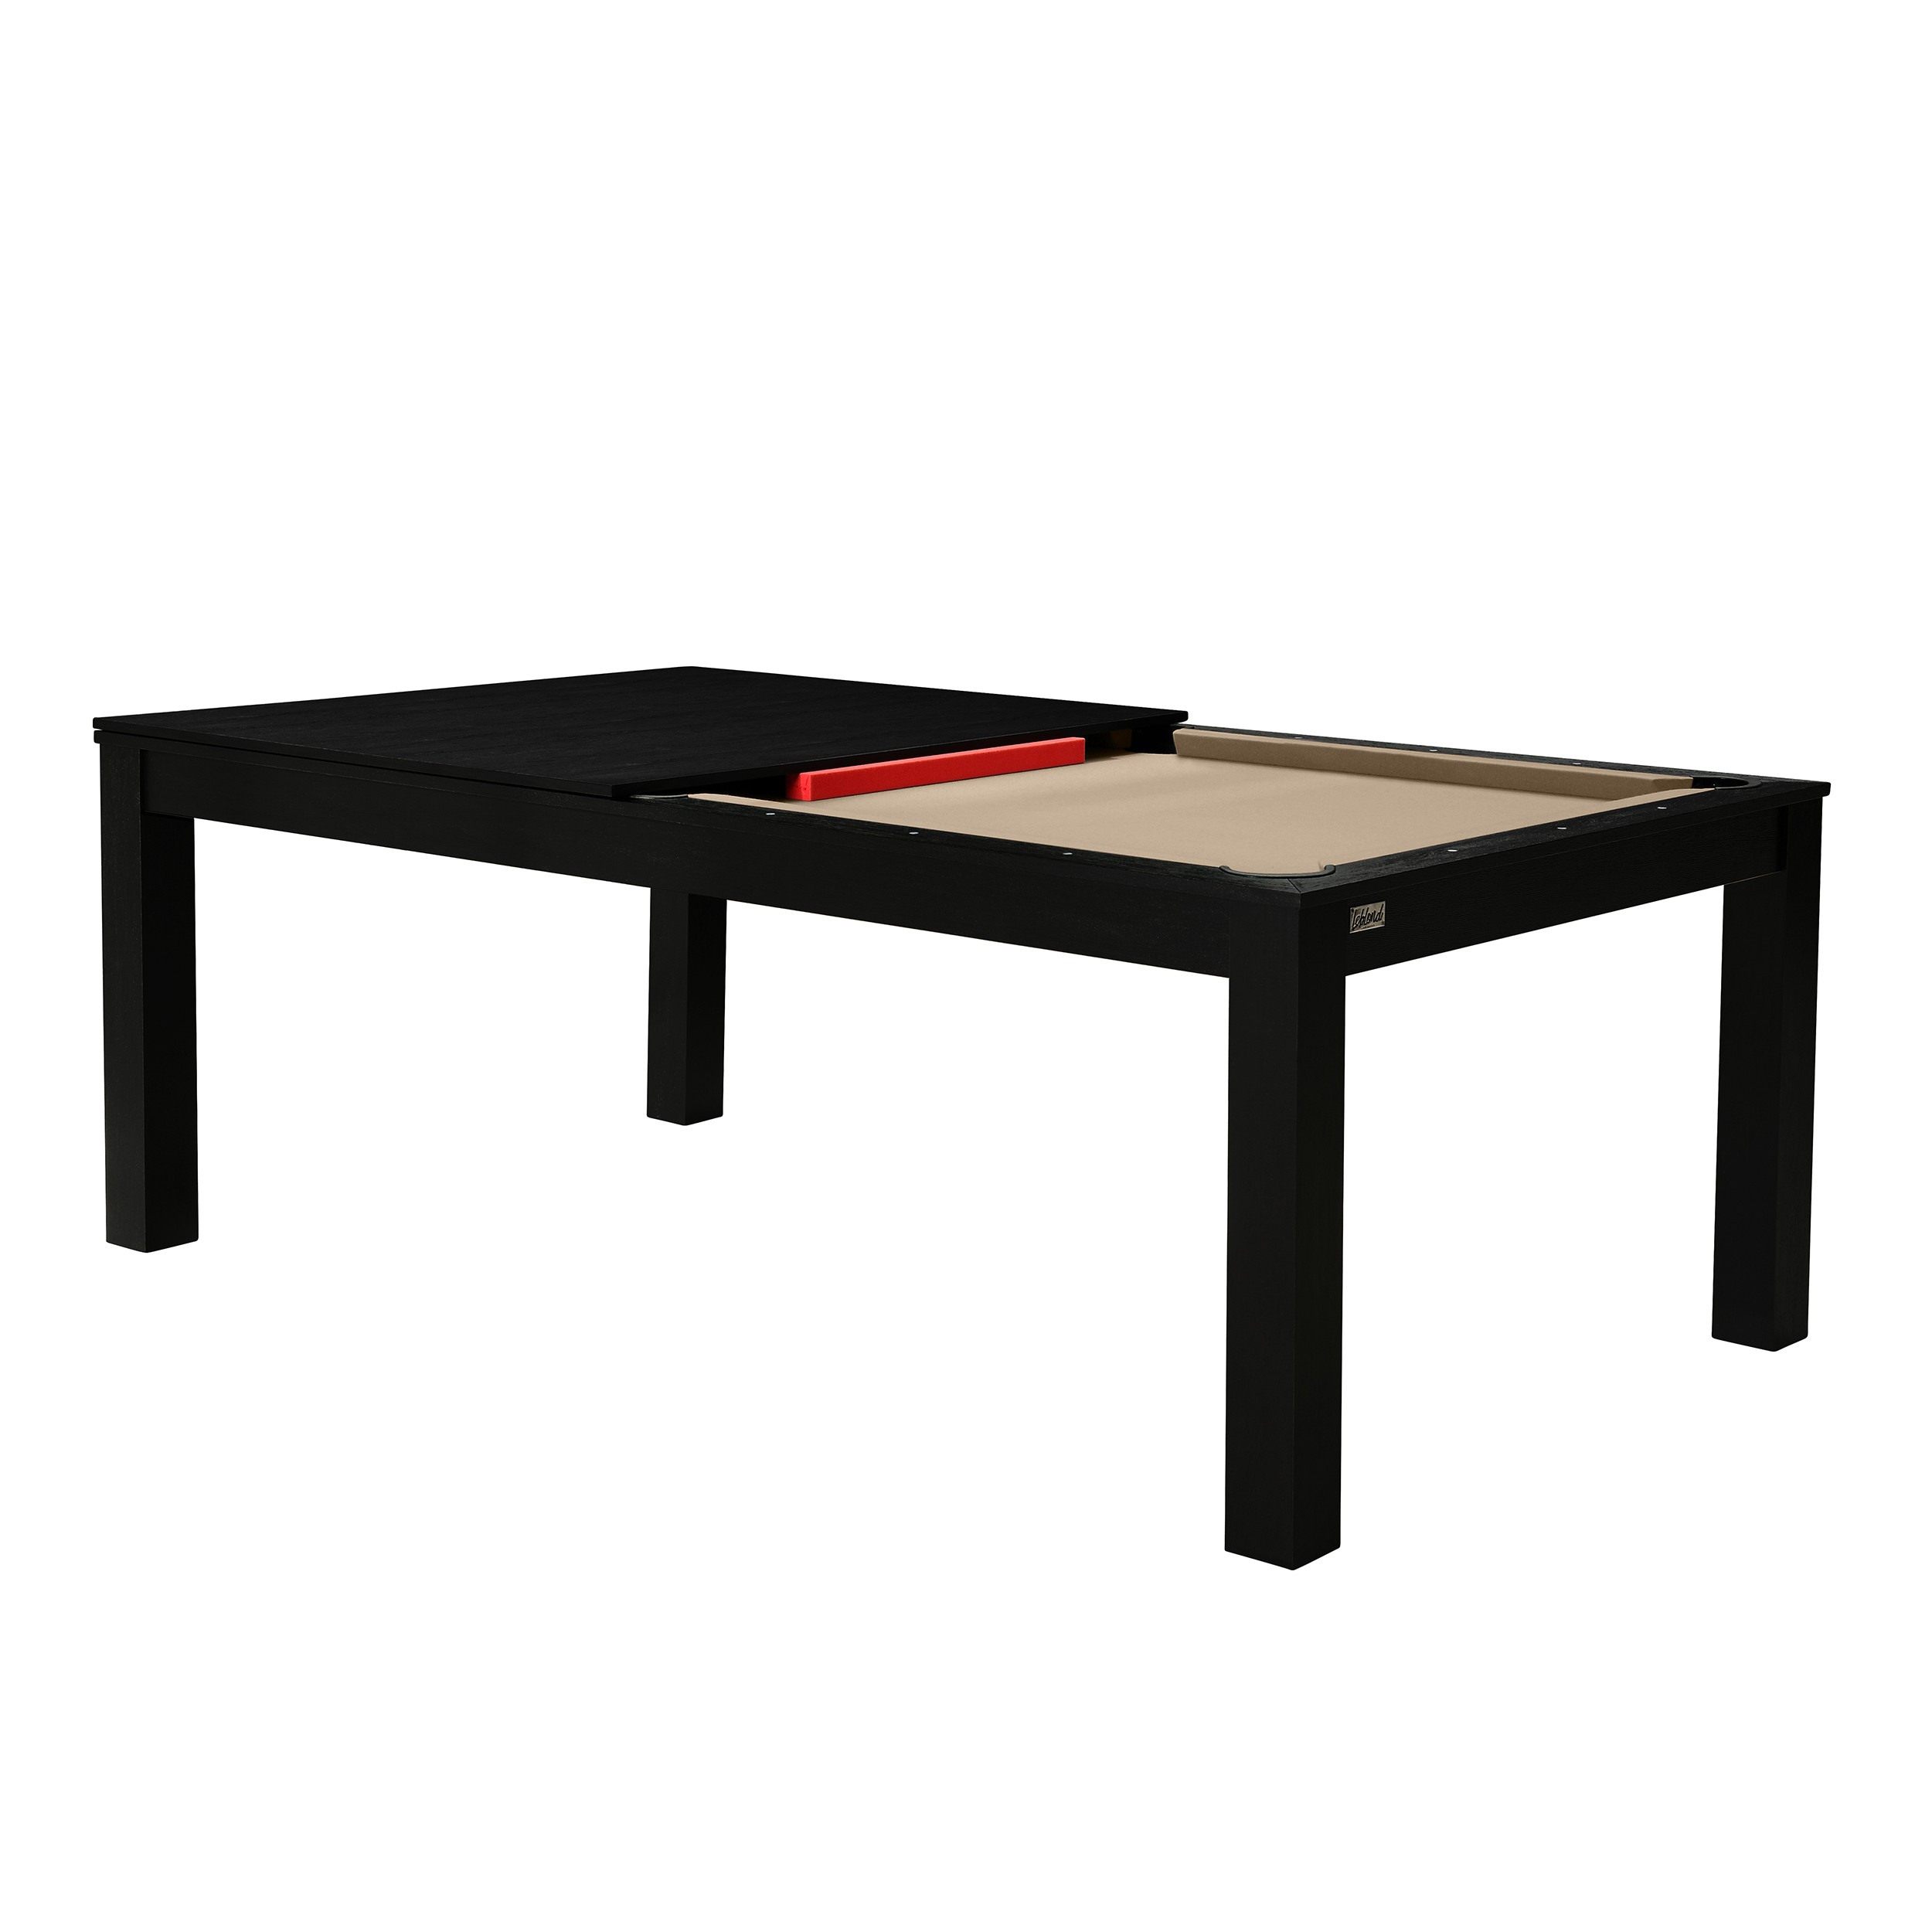 billard table convertible noir tapis beige achetez les billard table convertible noir tapis. Black Bedroom Furniture Sets. Home Design Ideas